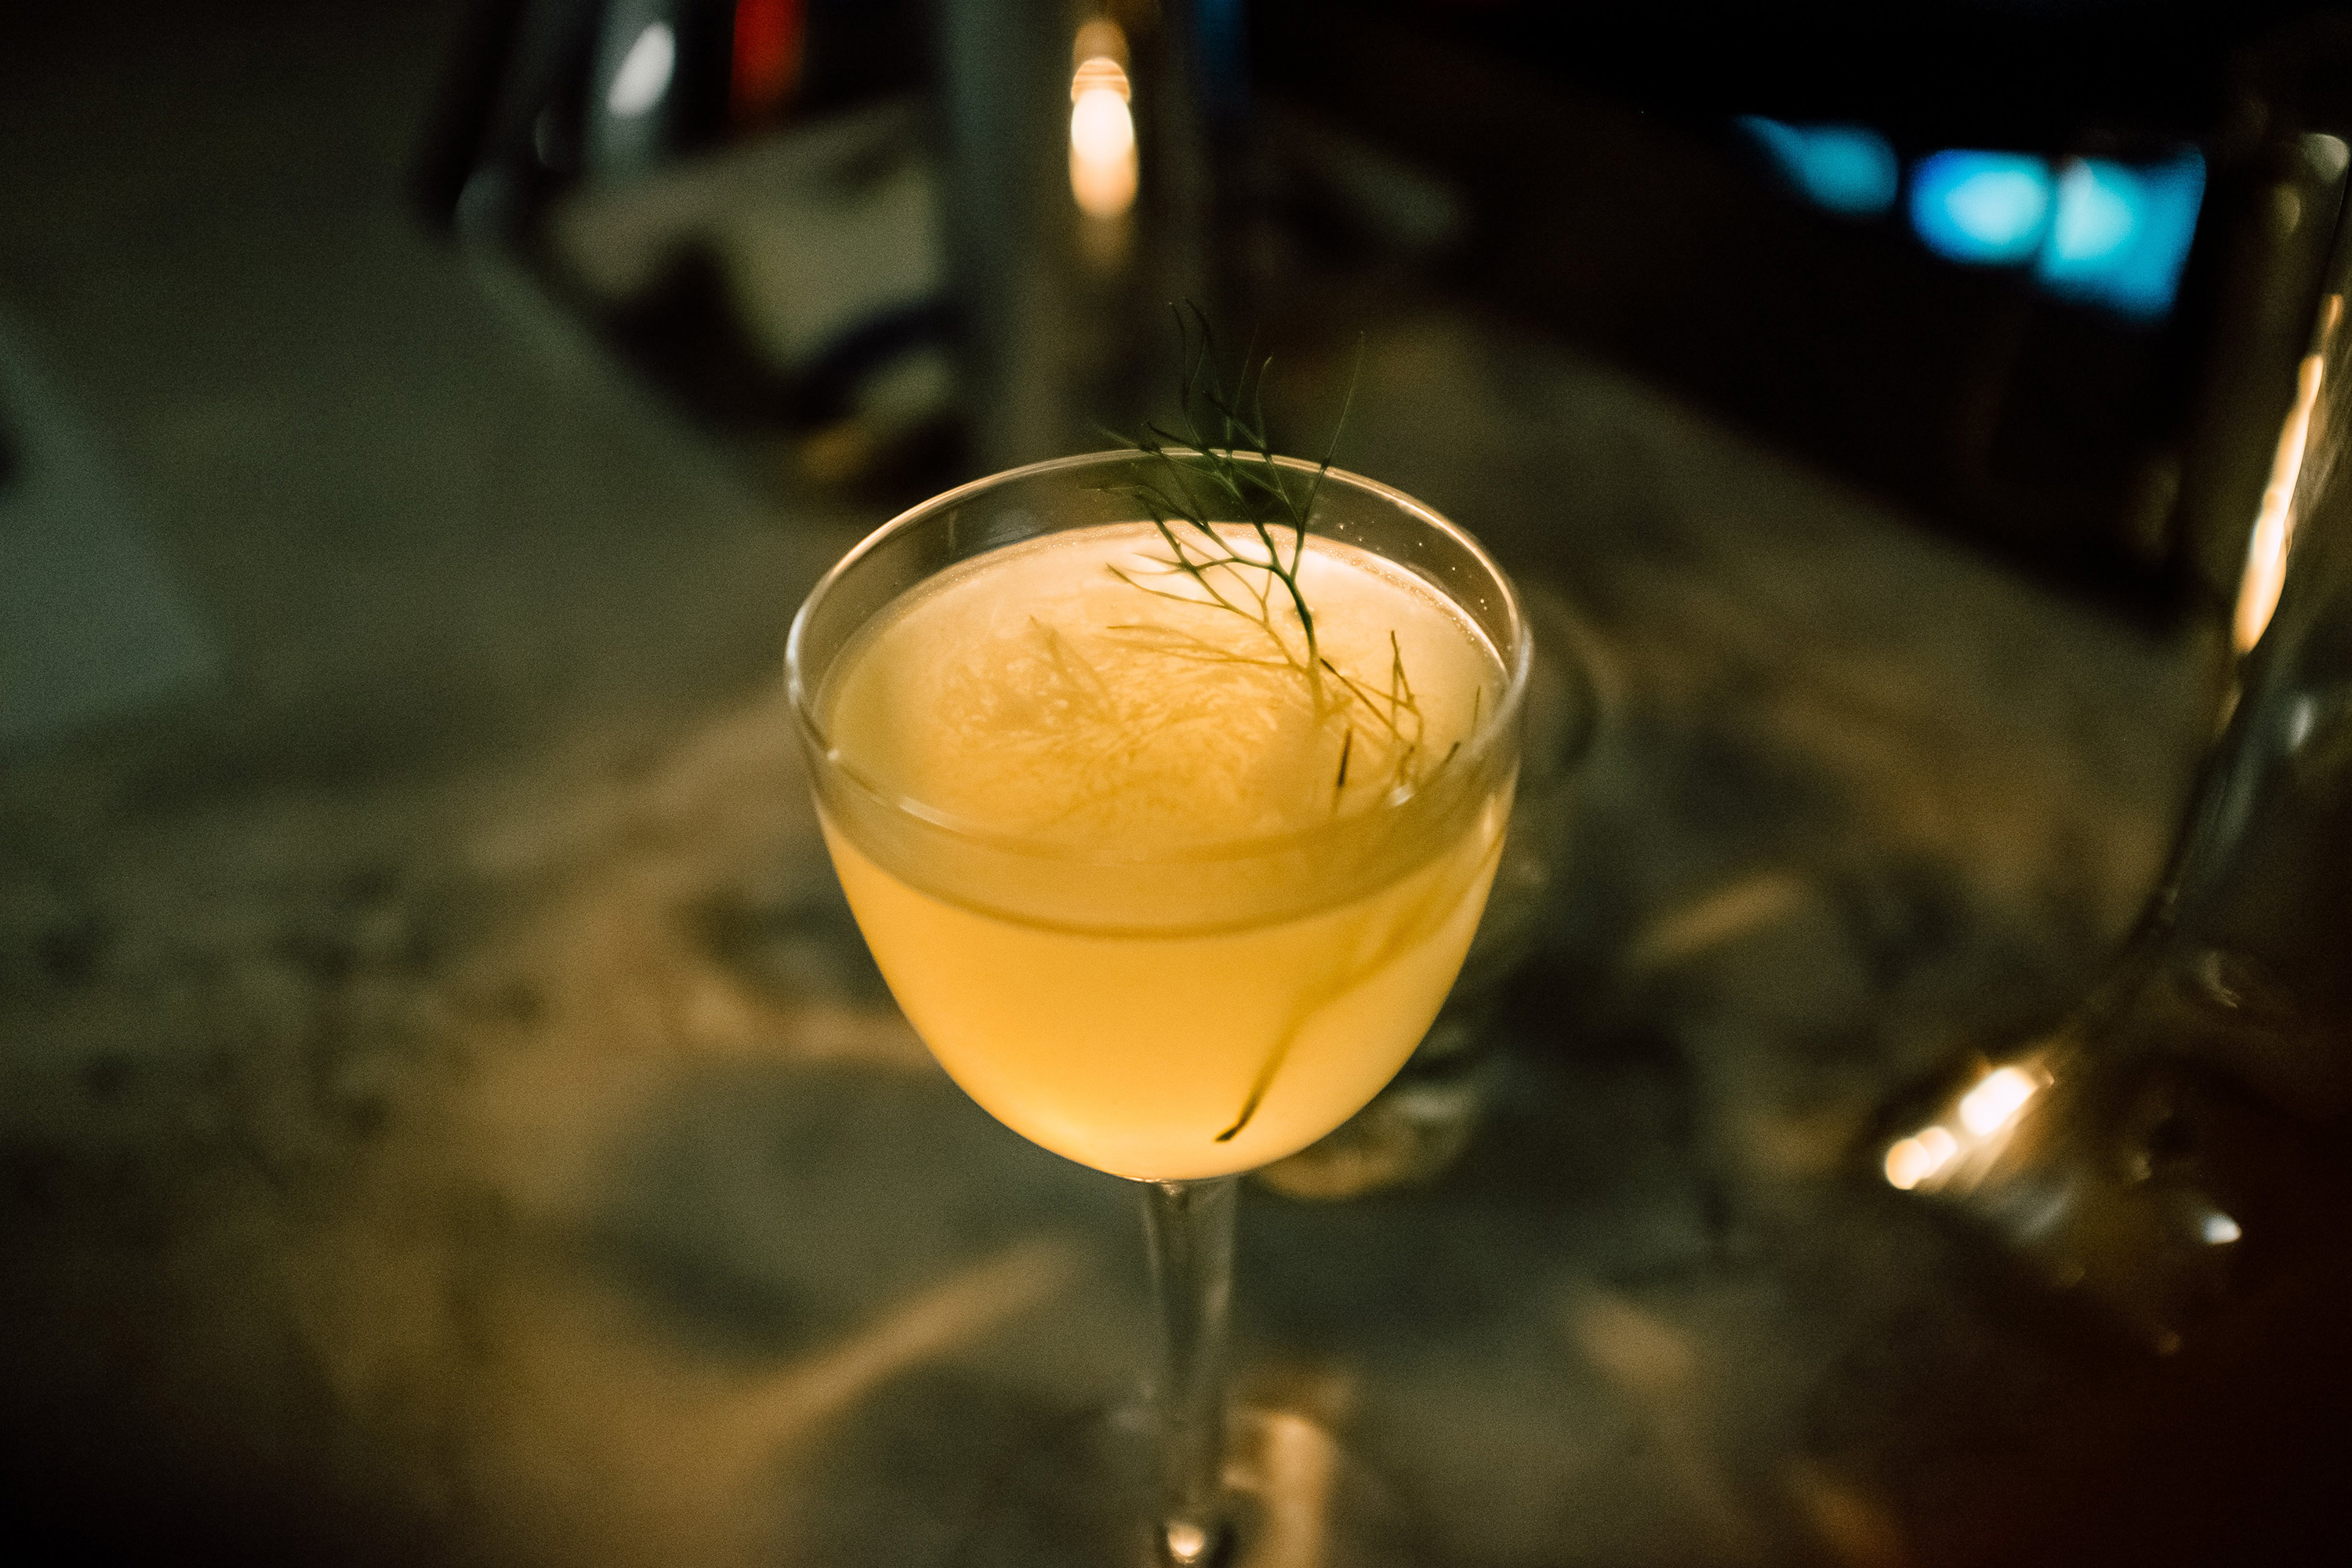 The  Smallbluff , a beverage containing Seedlip, is seen at Getaway, an alcohol-free bar in Brooklyn.